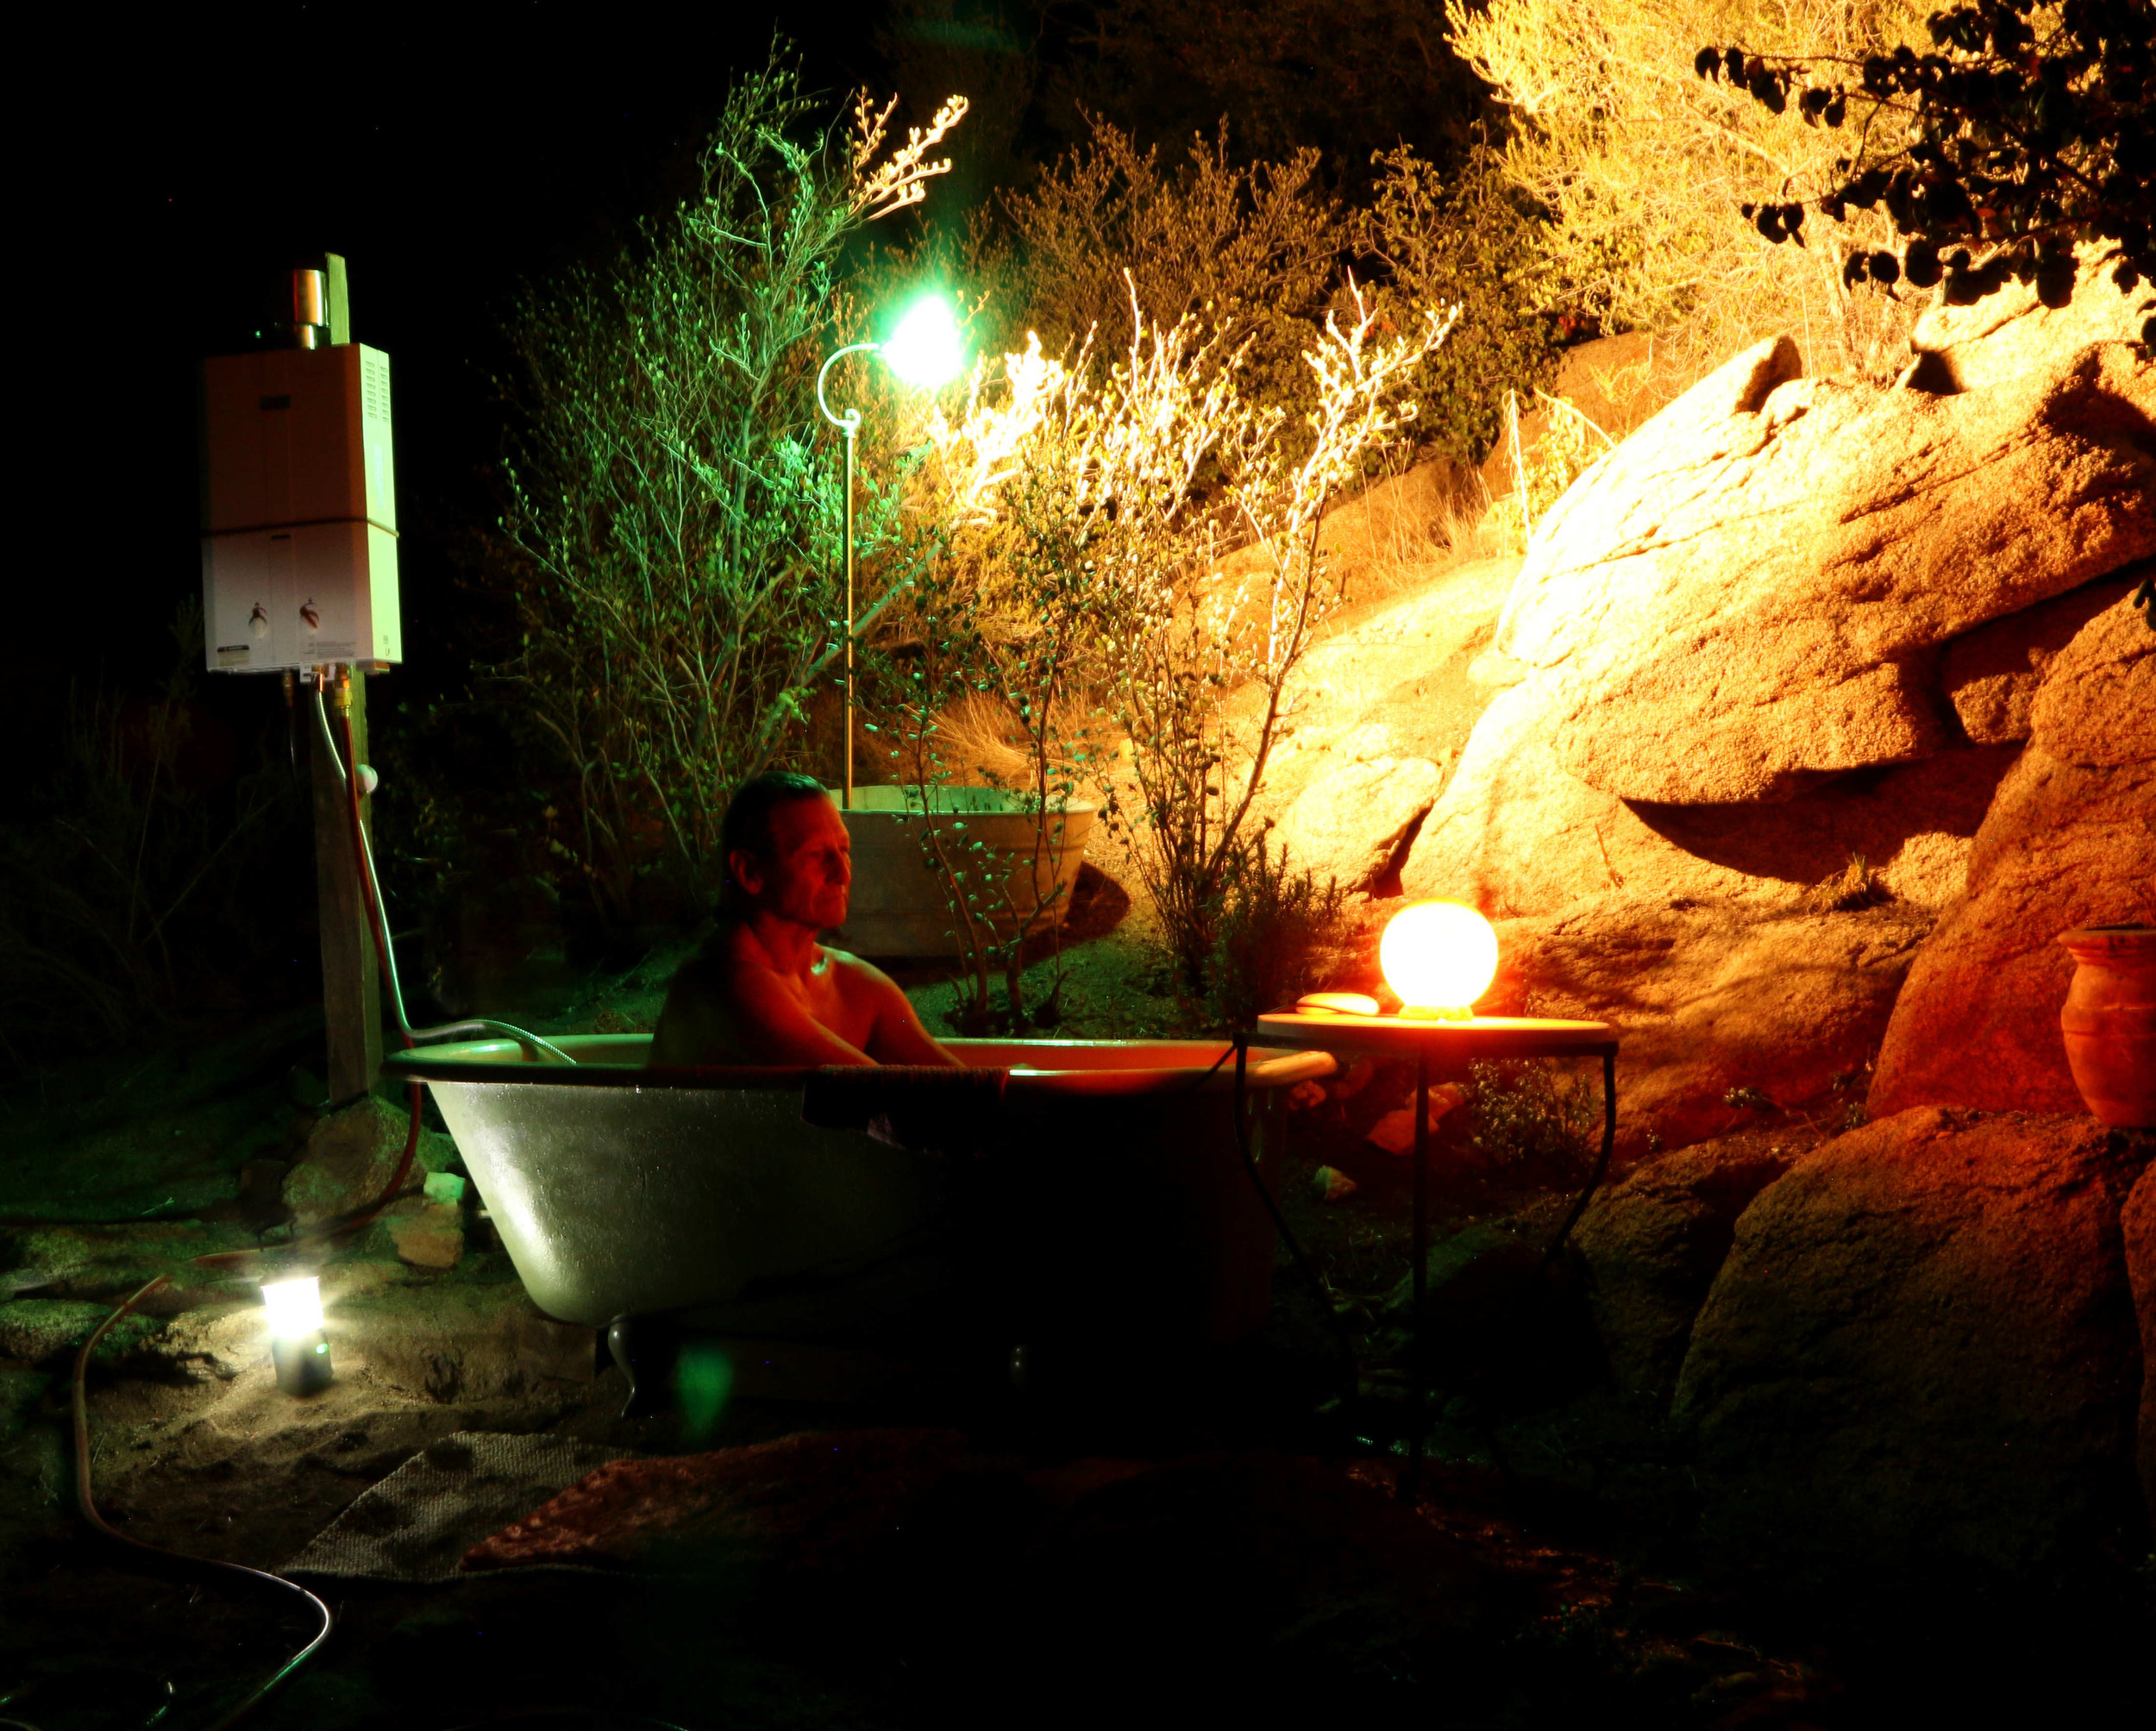 Taking a hot bath under the stars